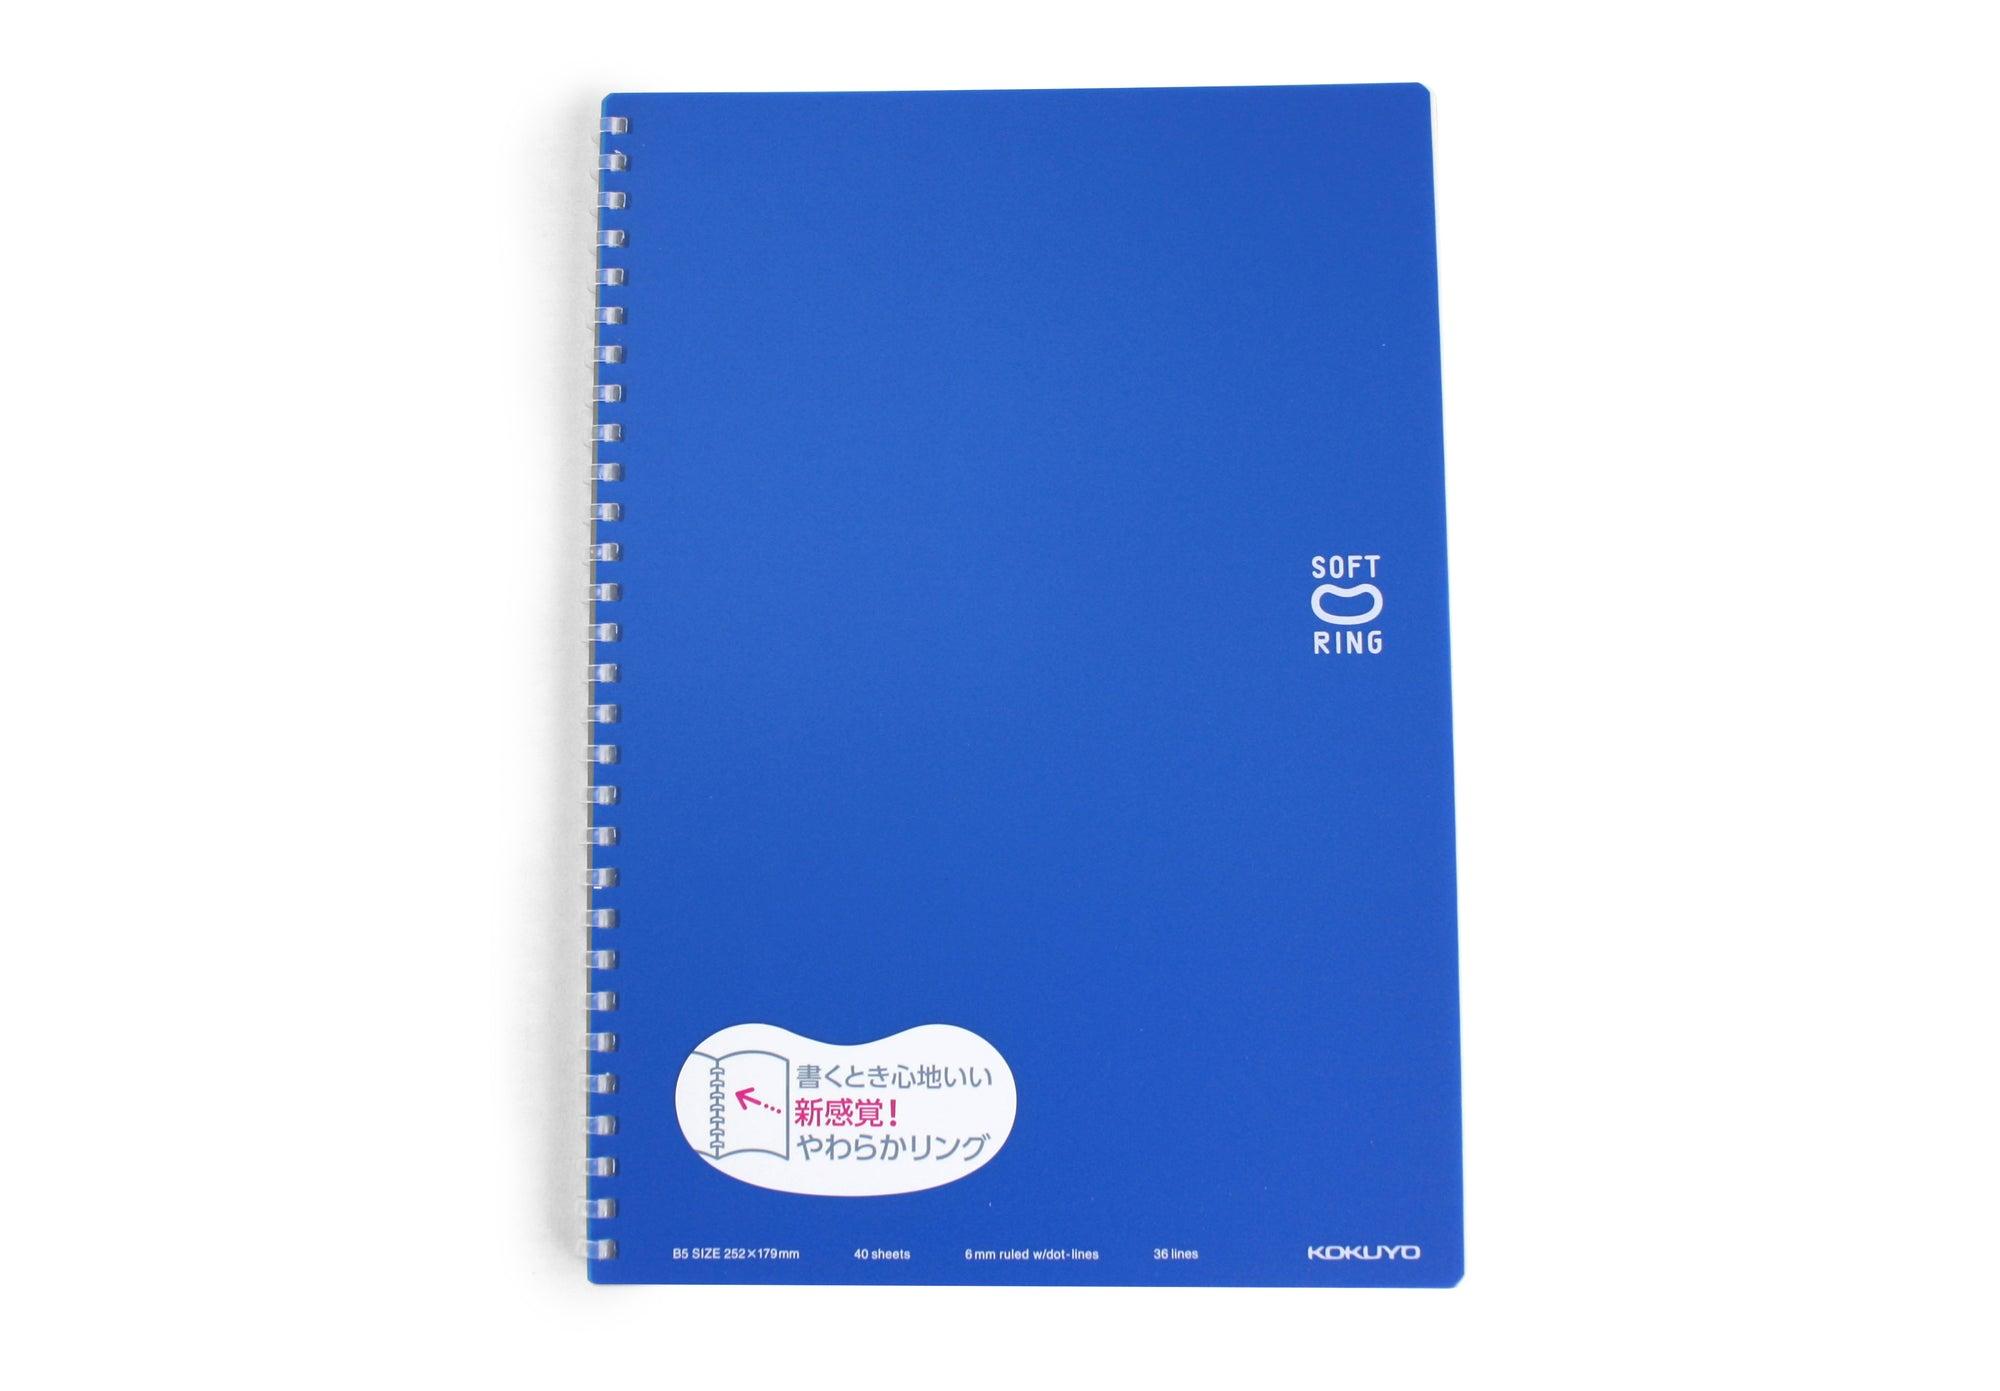 Kokuyo Soft Ring Notebook B5, 252mm x 179mm. Lined with dots. - farangshop-co